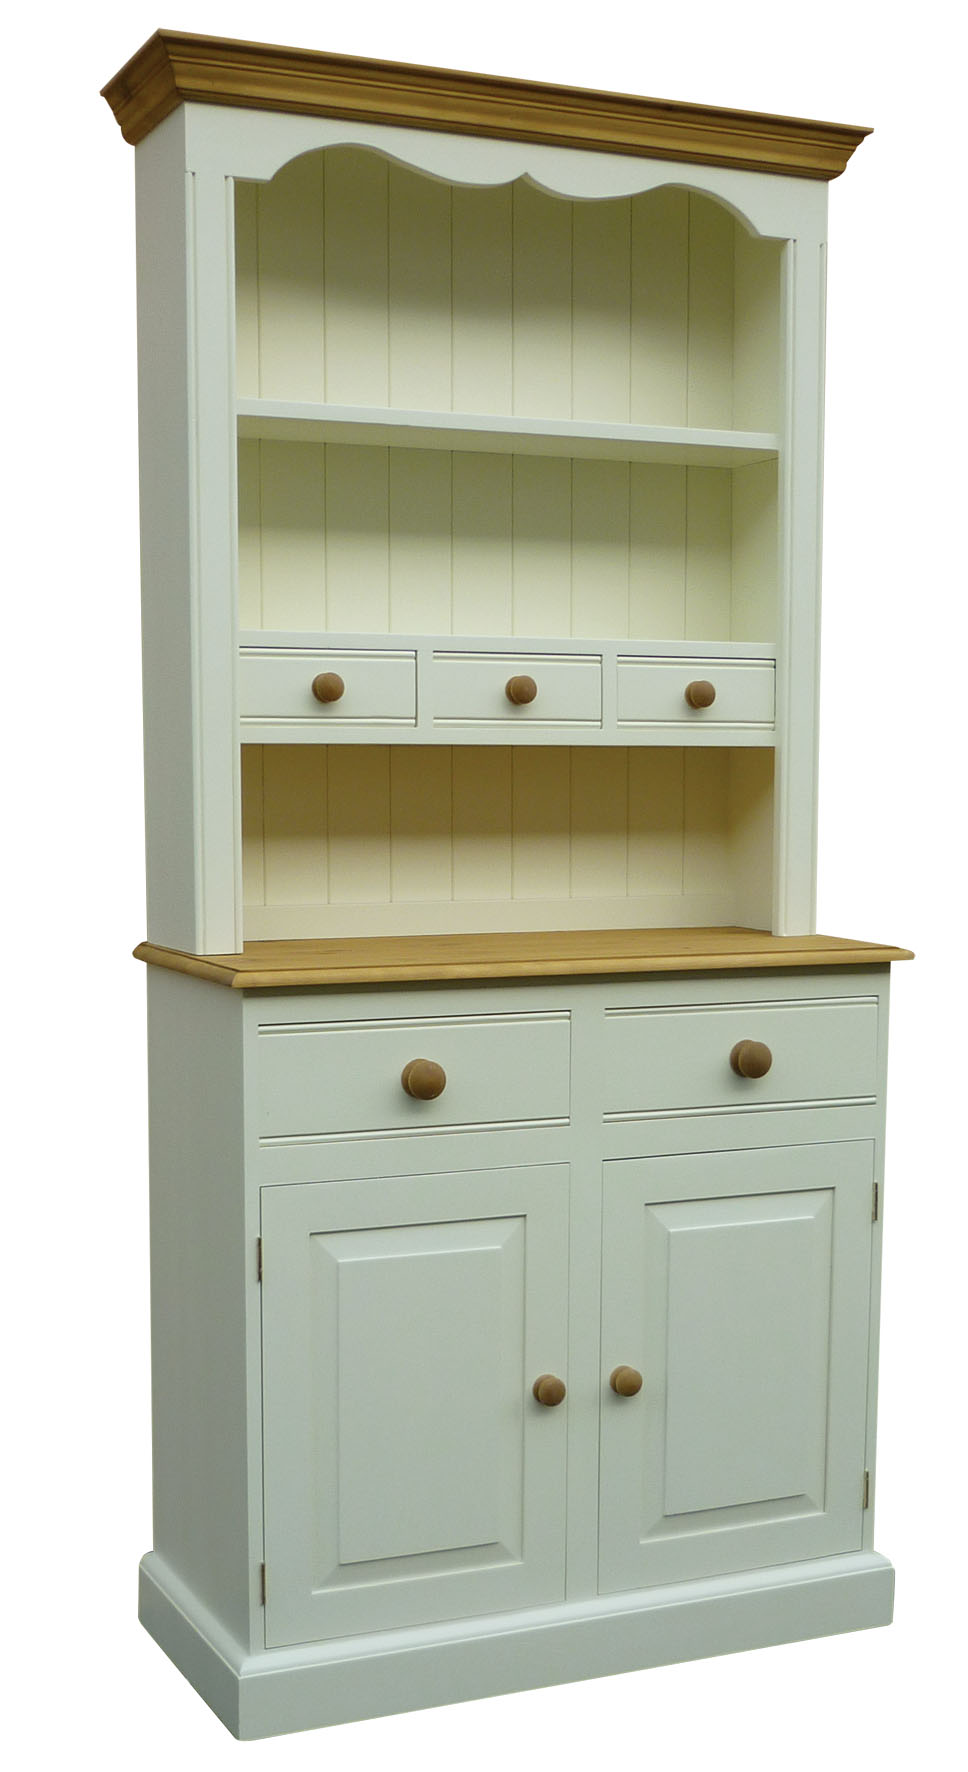 christy bird antiques household and office furniture ForTraditional Kitchen Dresser